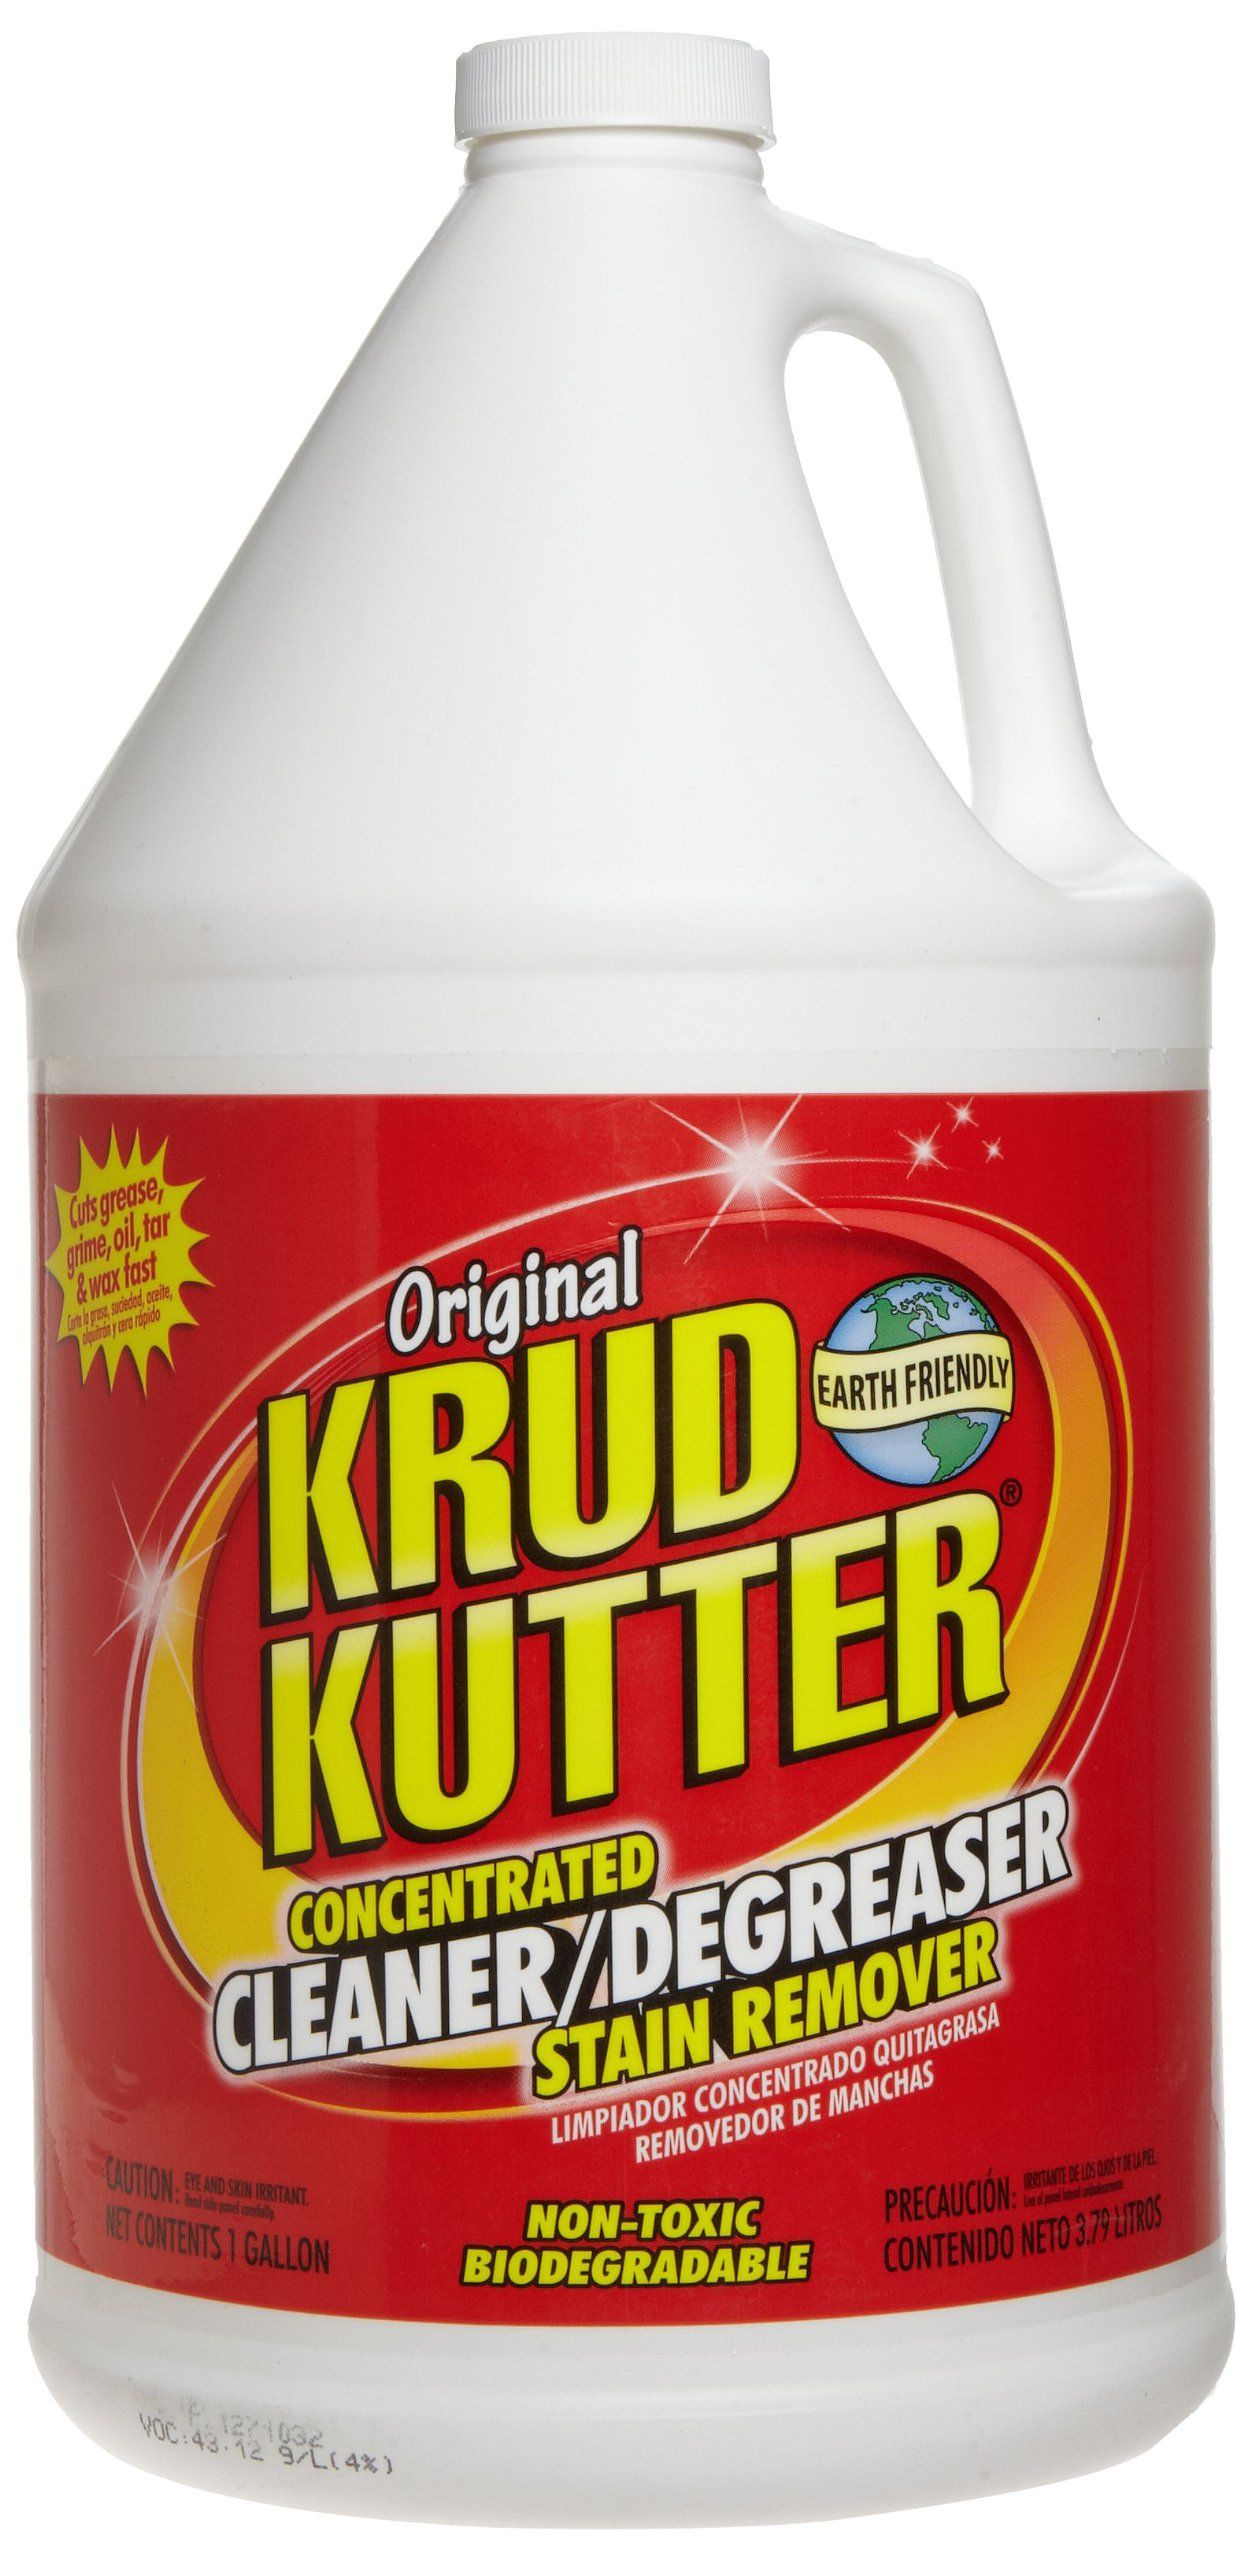 Krud Kutter Kk01 Clear Original Concentrated Cleaner Degreaser Stain Remover With No Odor 1 Gallon Degreasers Krud Kutter Best Concrete Cleaner